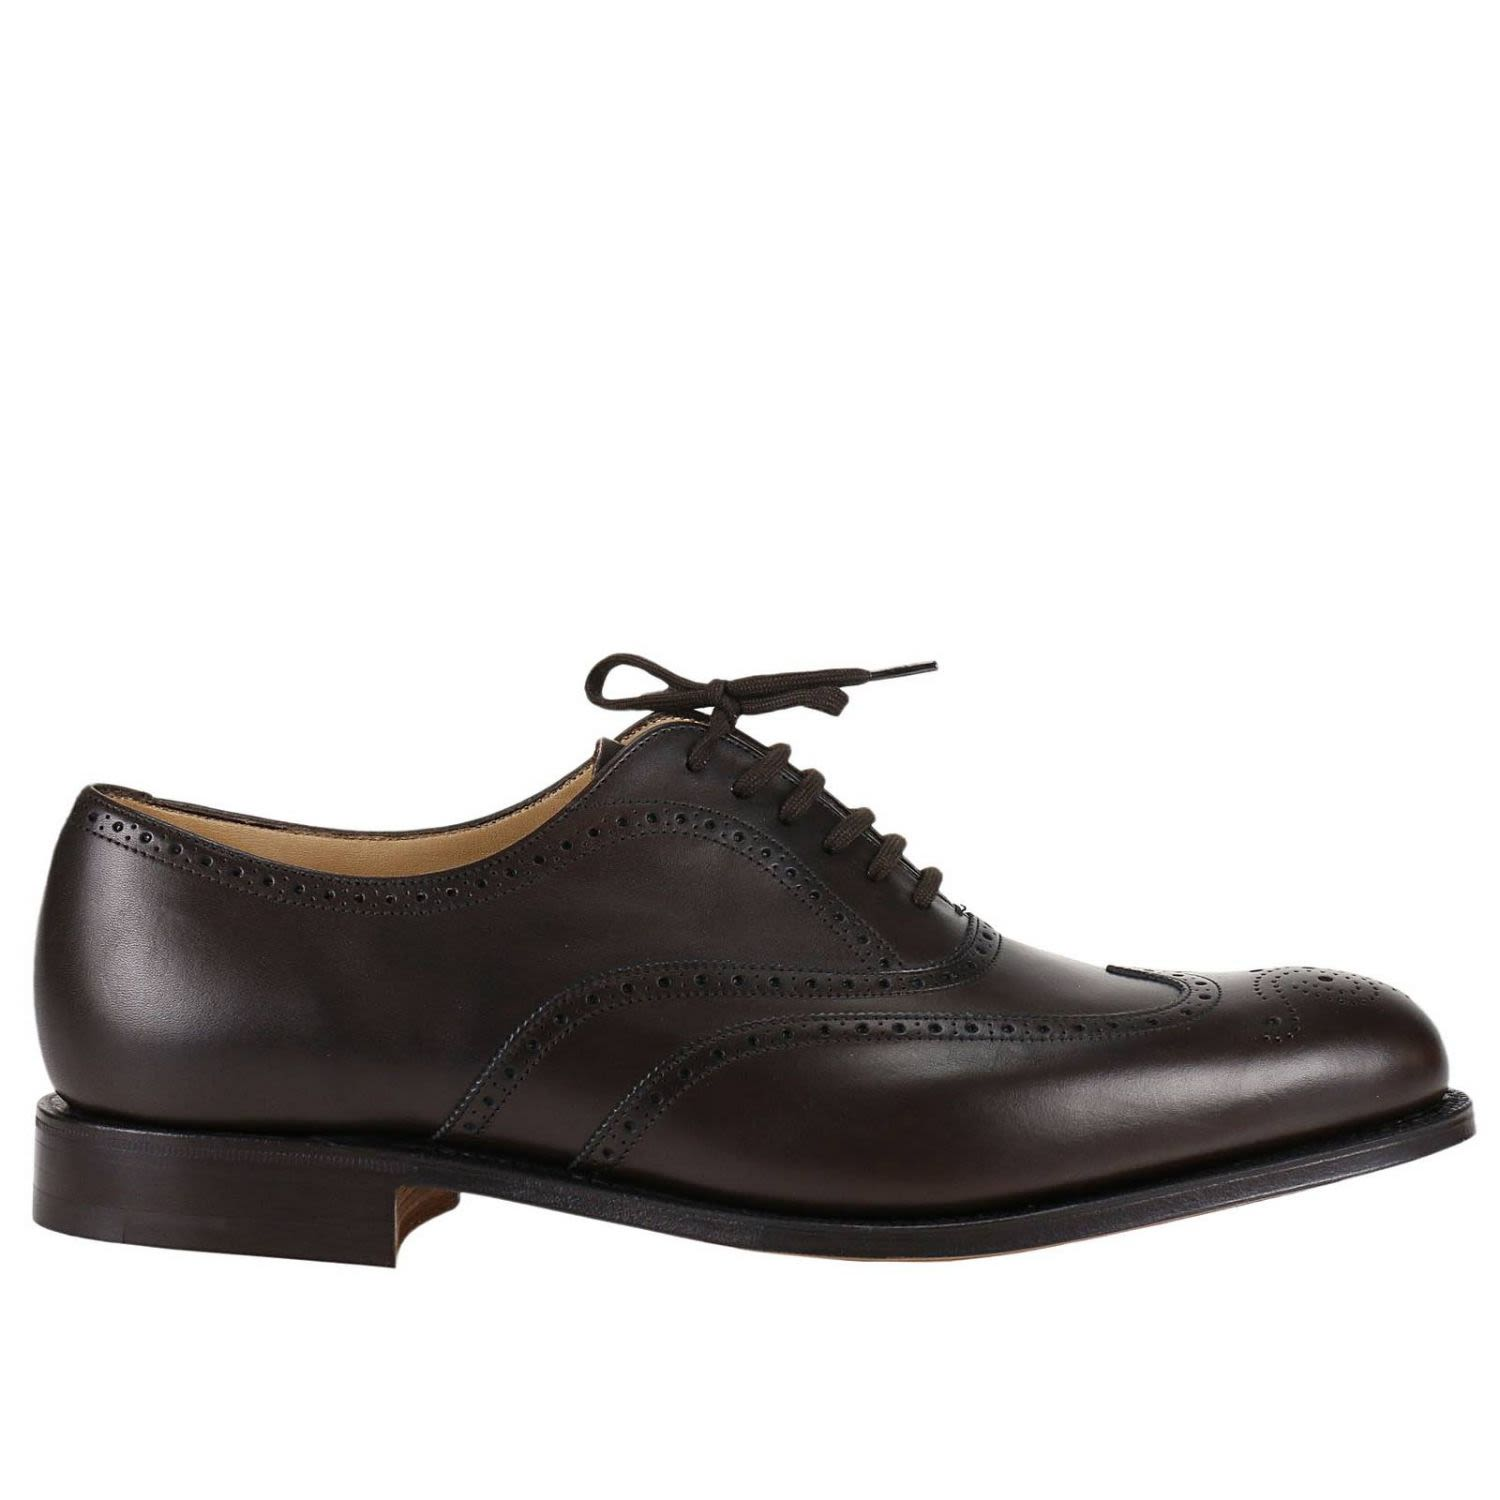 Brogue Shoes Berlin Oxford Shoes With Full Brogue Pattern